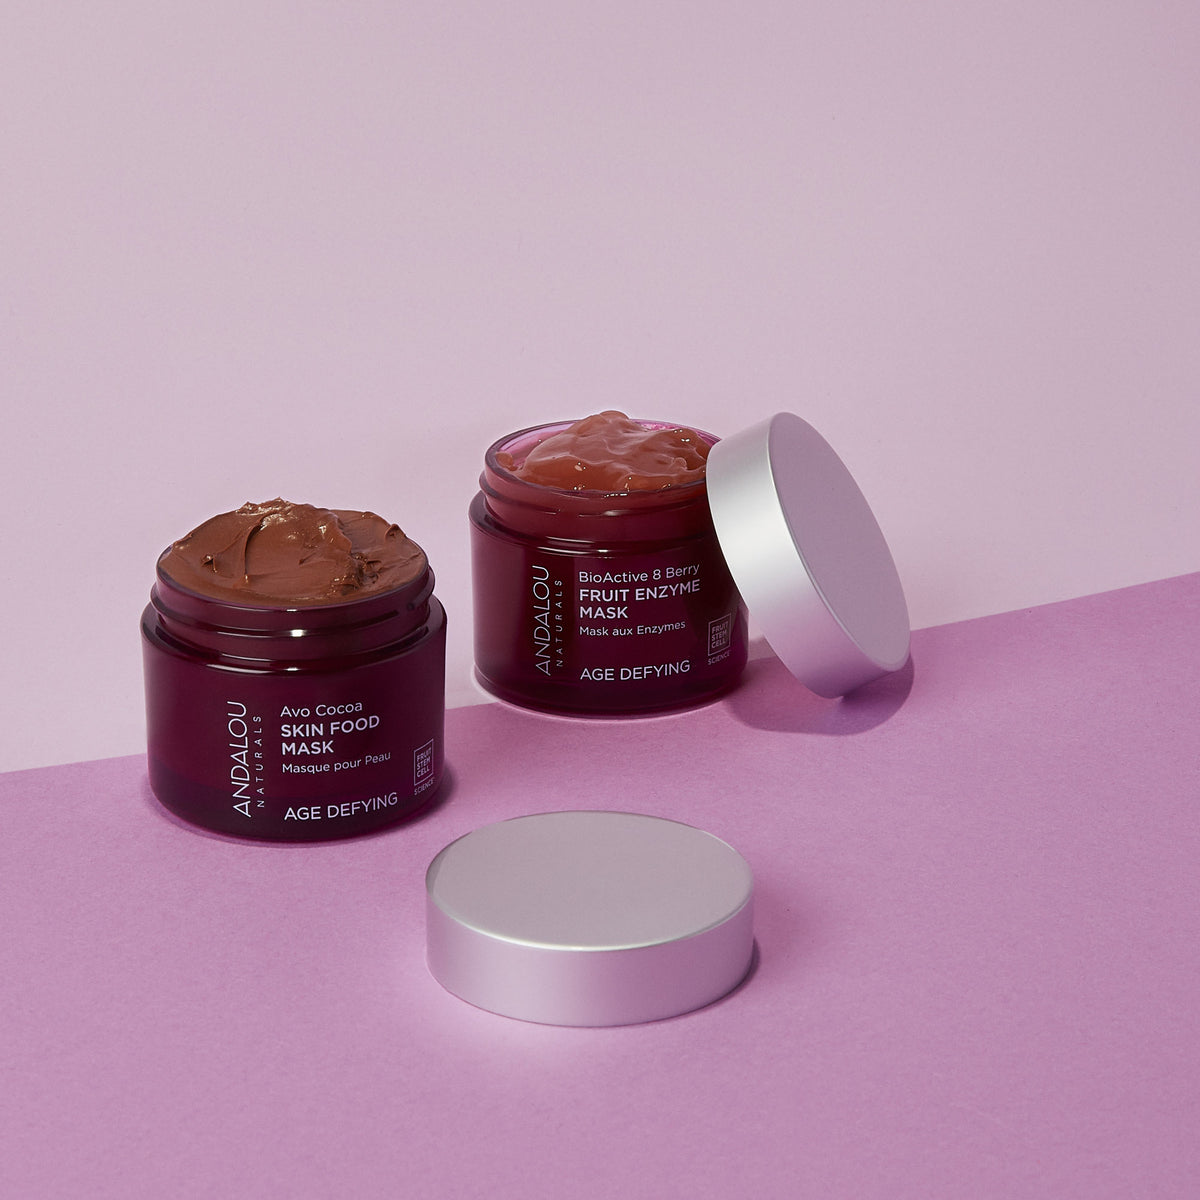 open jars of Andalou Naturals Age Defying Avo Cocoa Skin Food Mask